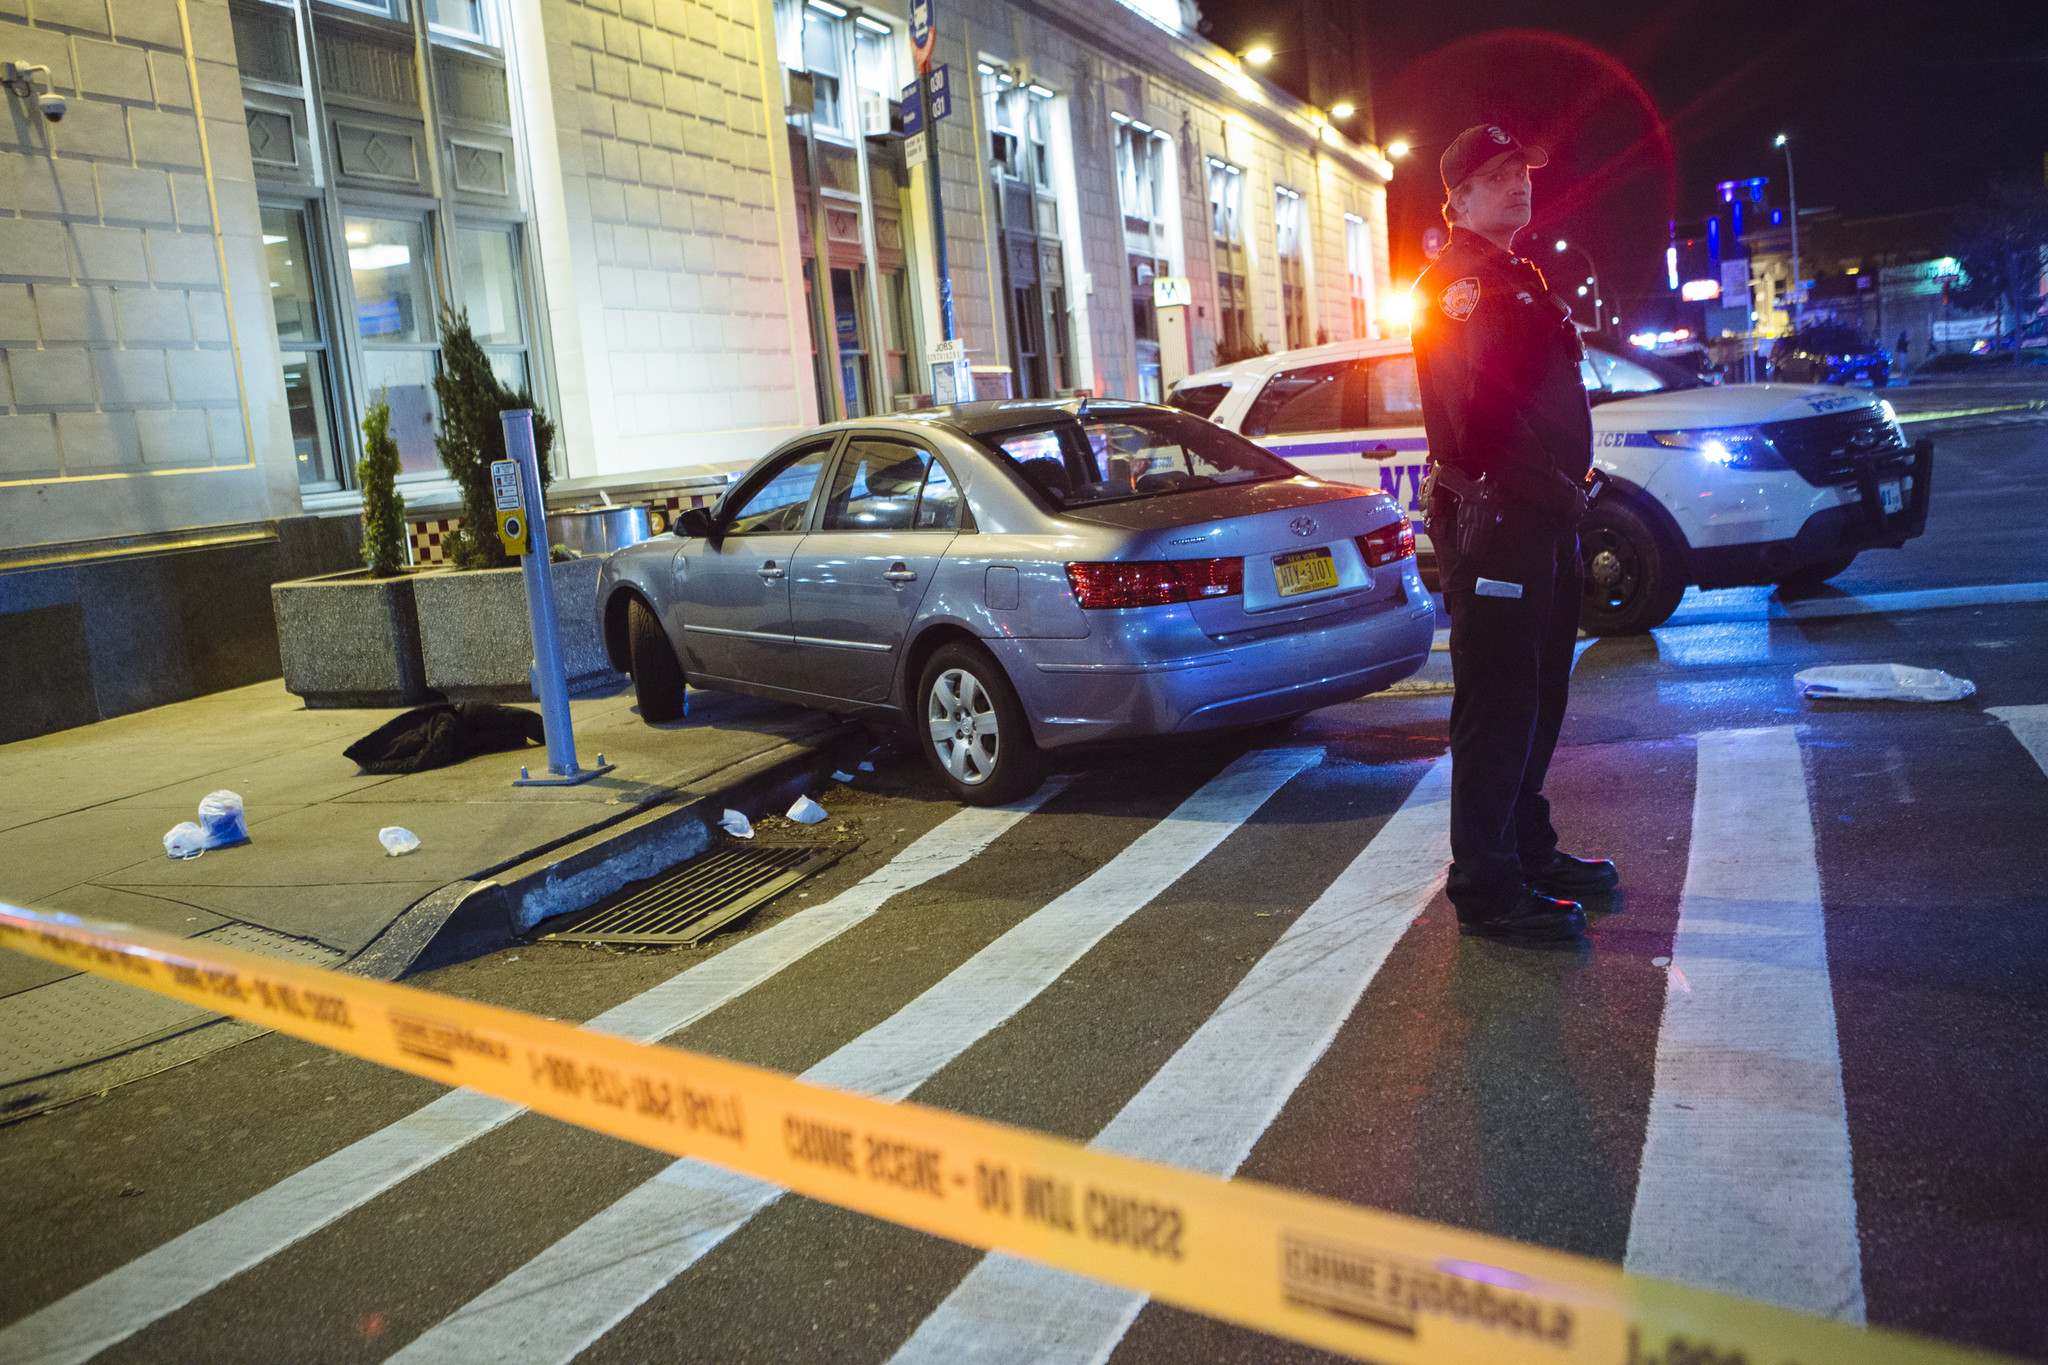 Hit-and-run driver in stolen car jumps curb, kills woman on Queens street: sources